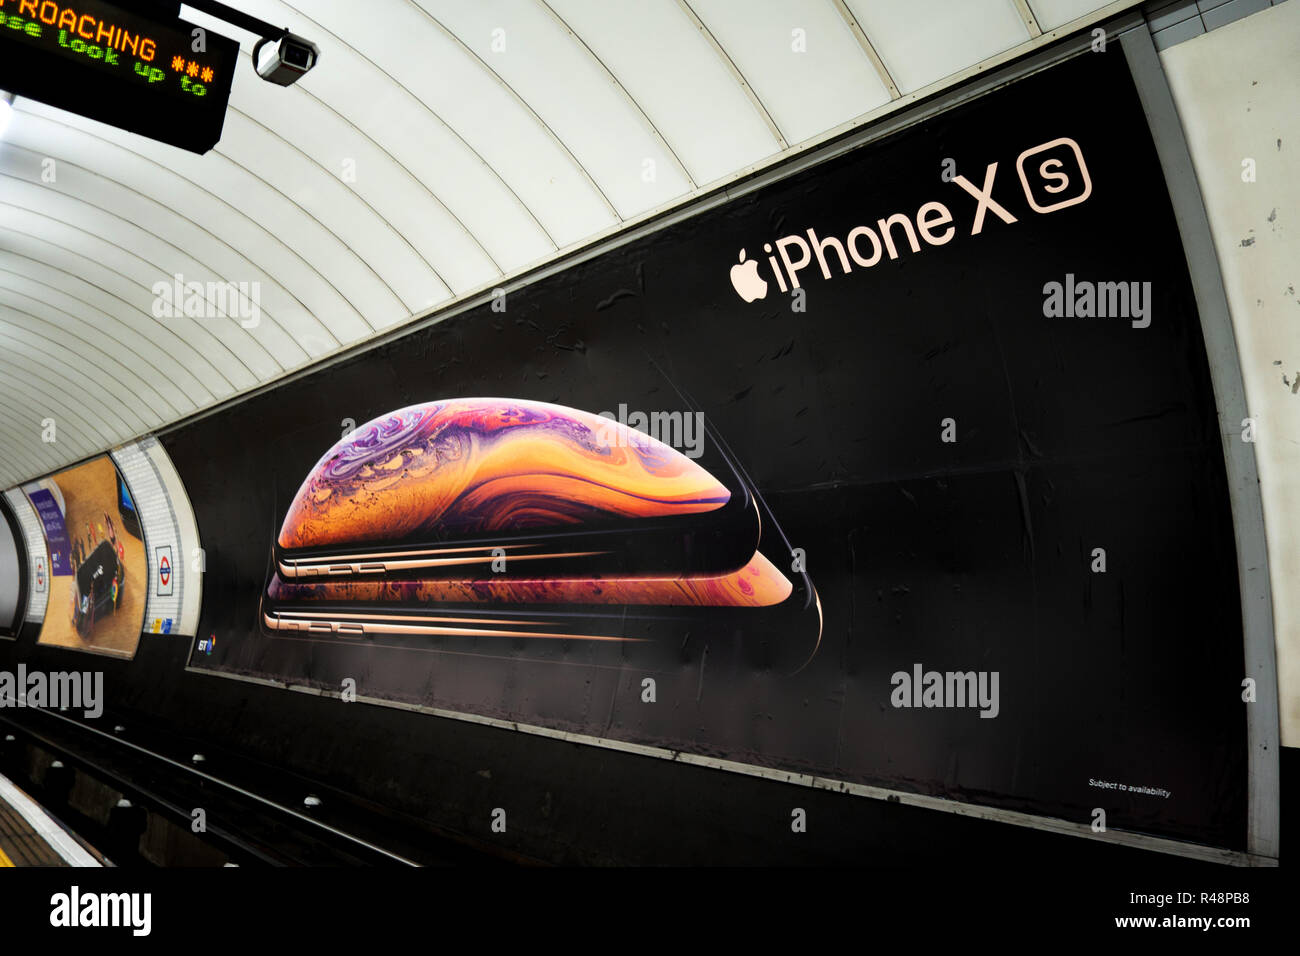 Ad poster for the new Apple iPhone XS, in the London Underground - Stock Image